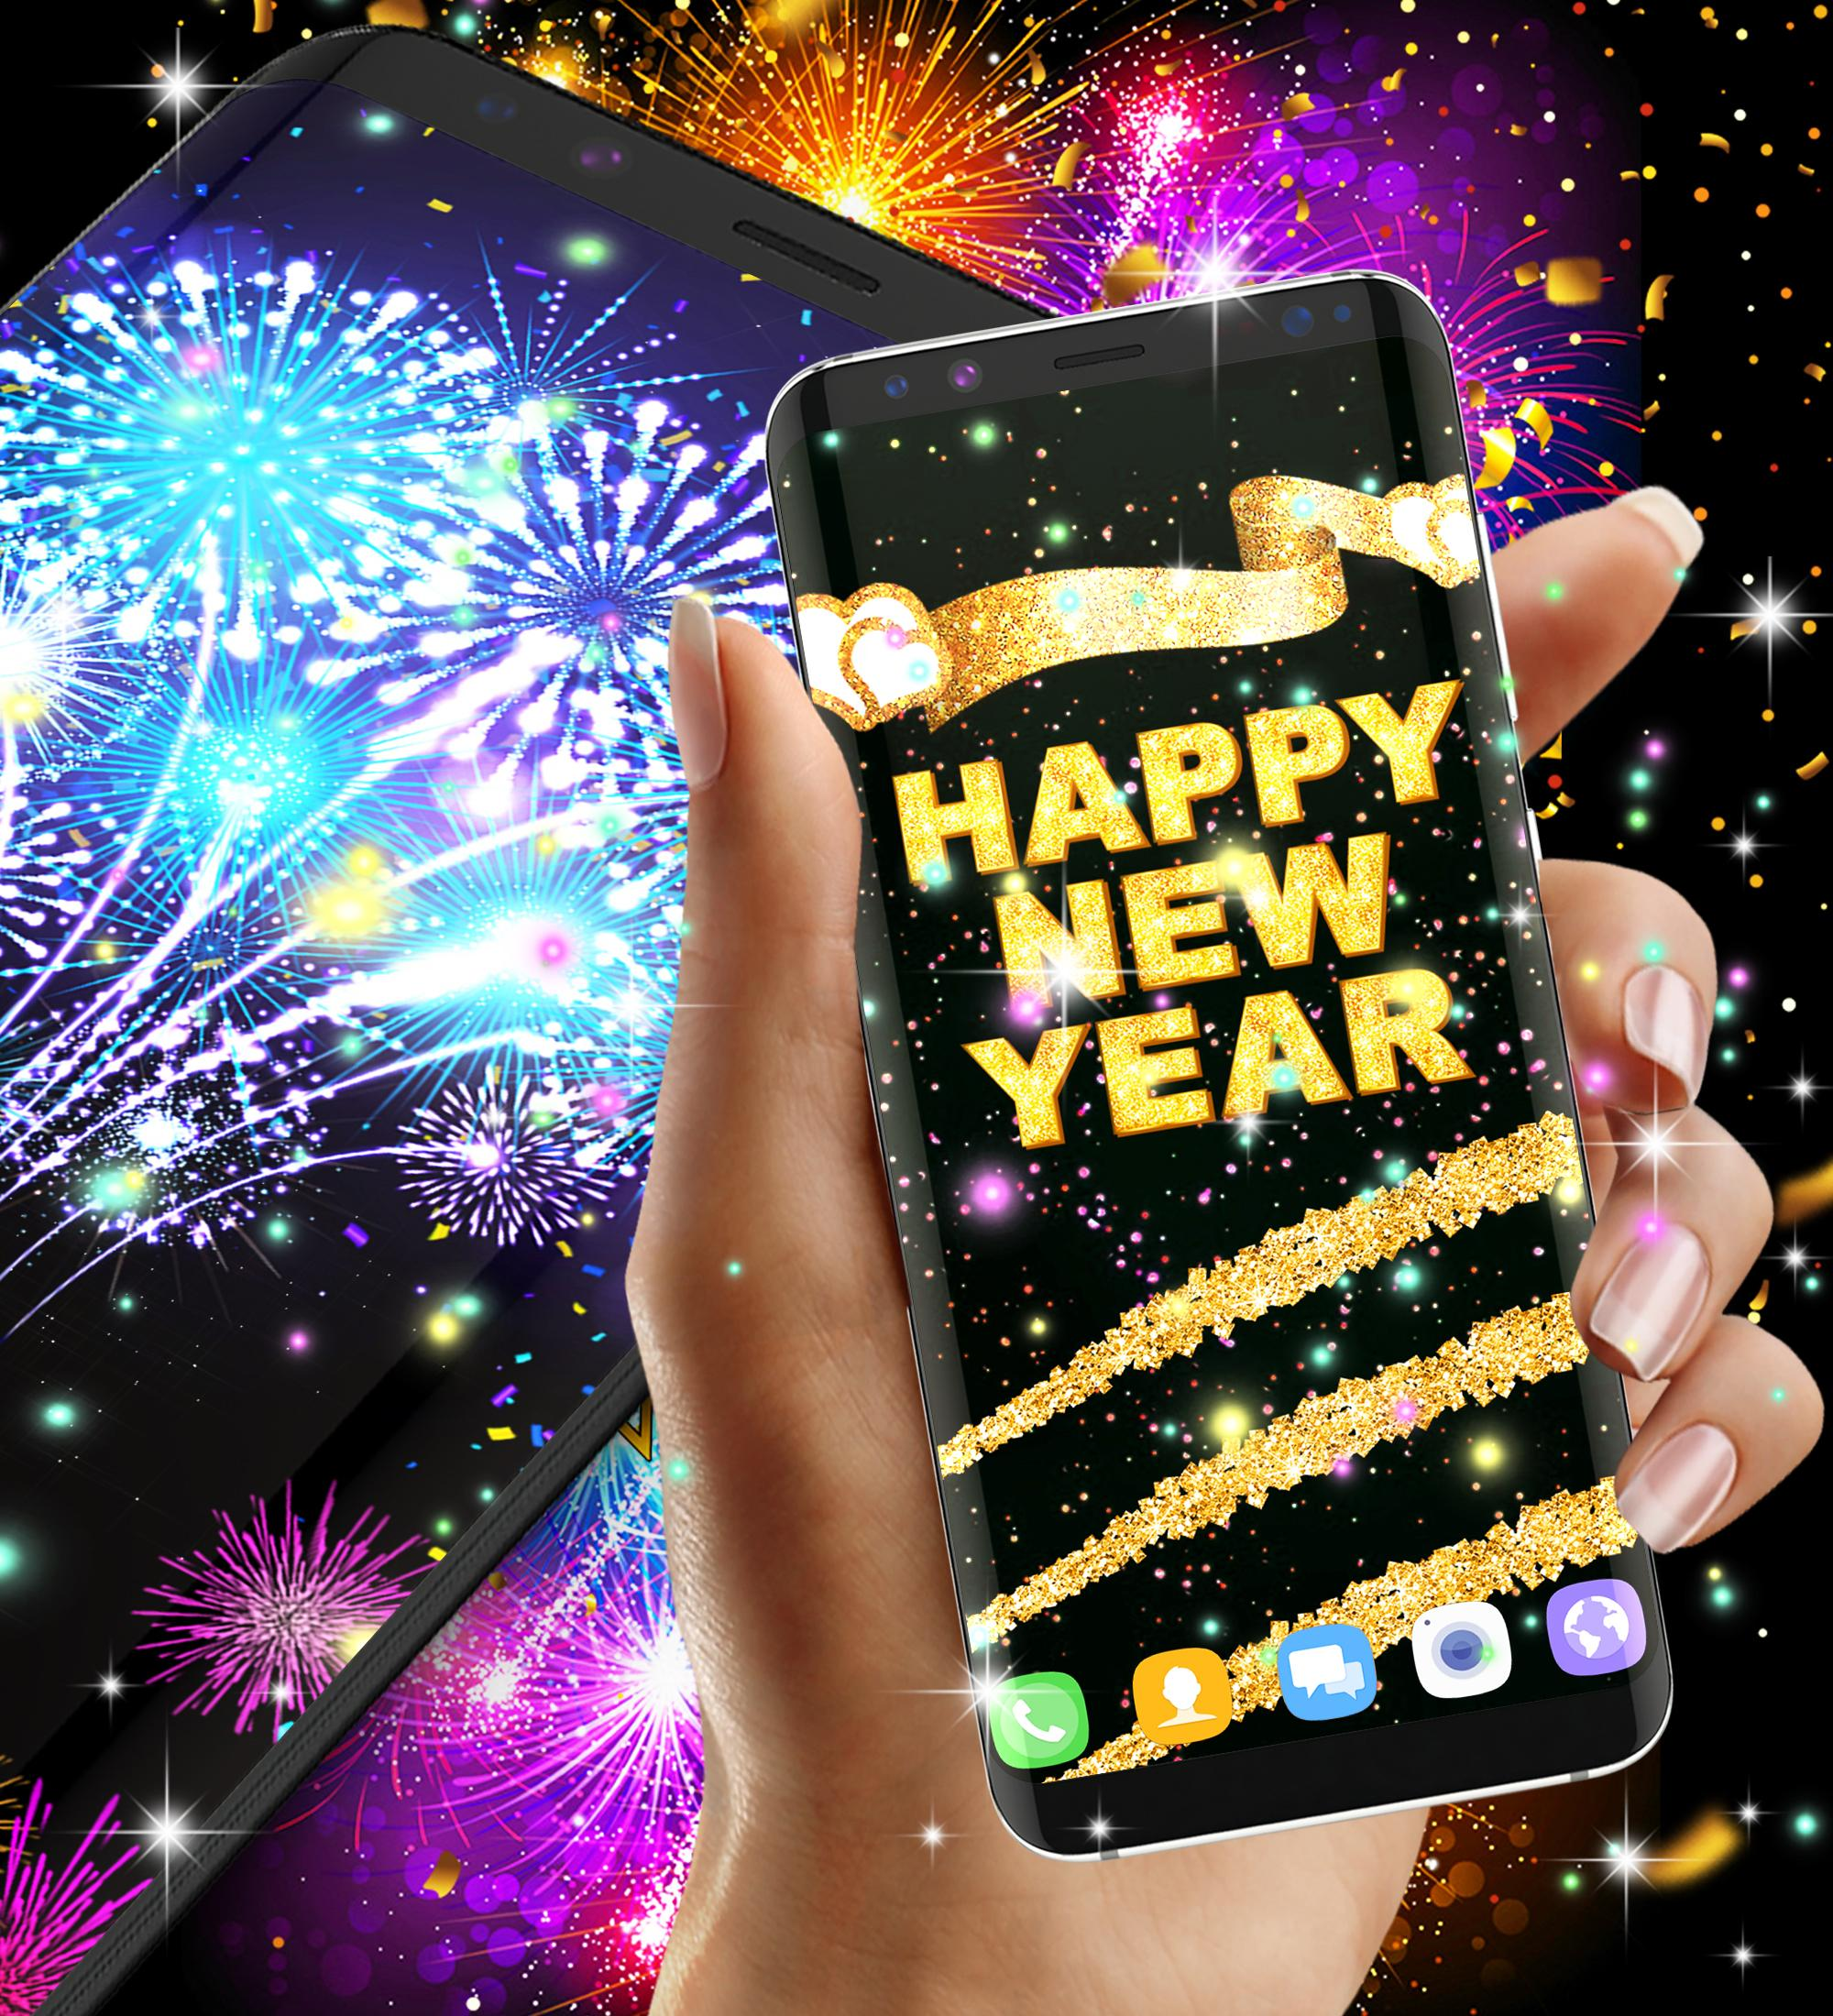 Happy New Year 2021 Live Wallpaper For Android Apk Download